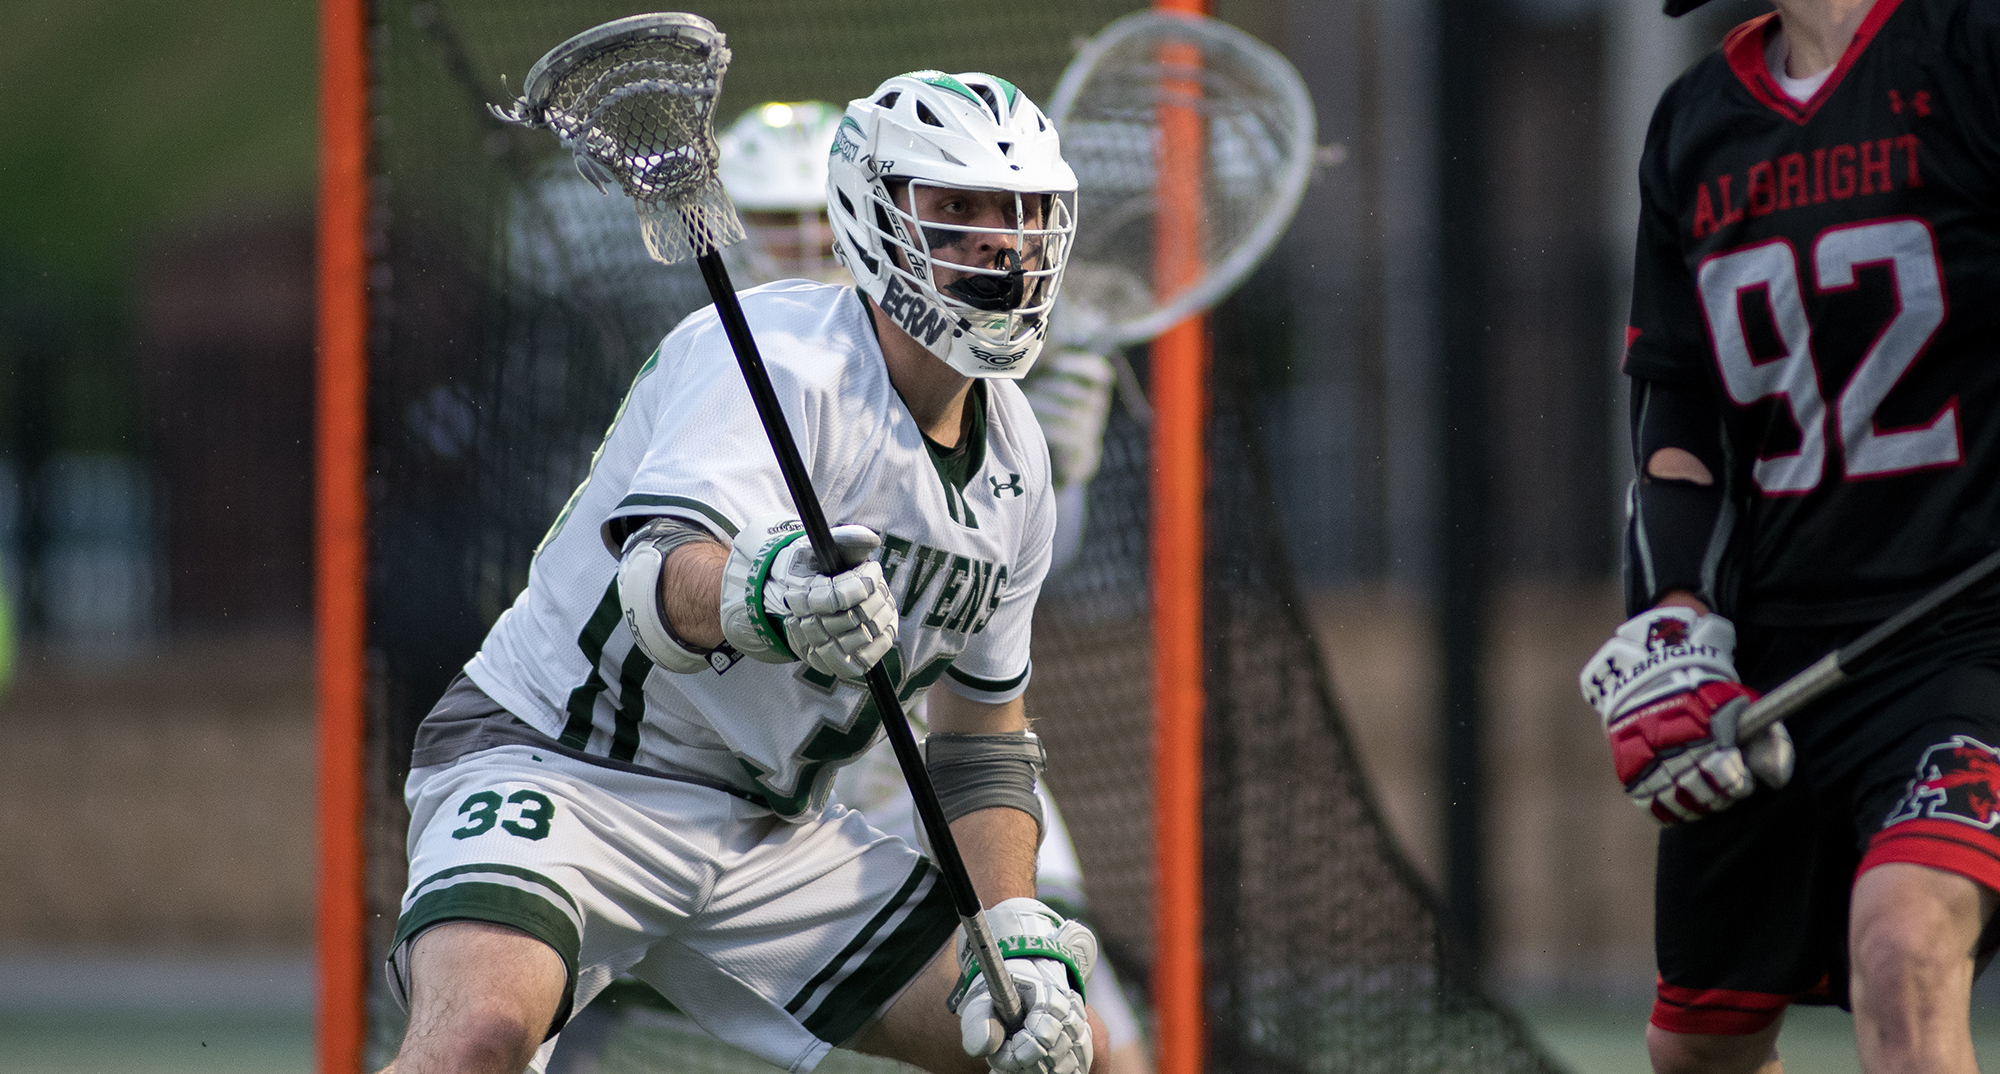 DeFazio Named ECAC South Defensive Player of the Year, D'Onofrio, Burnette Also Honored